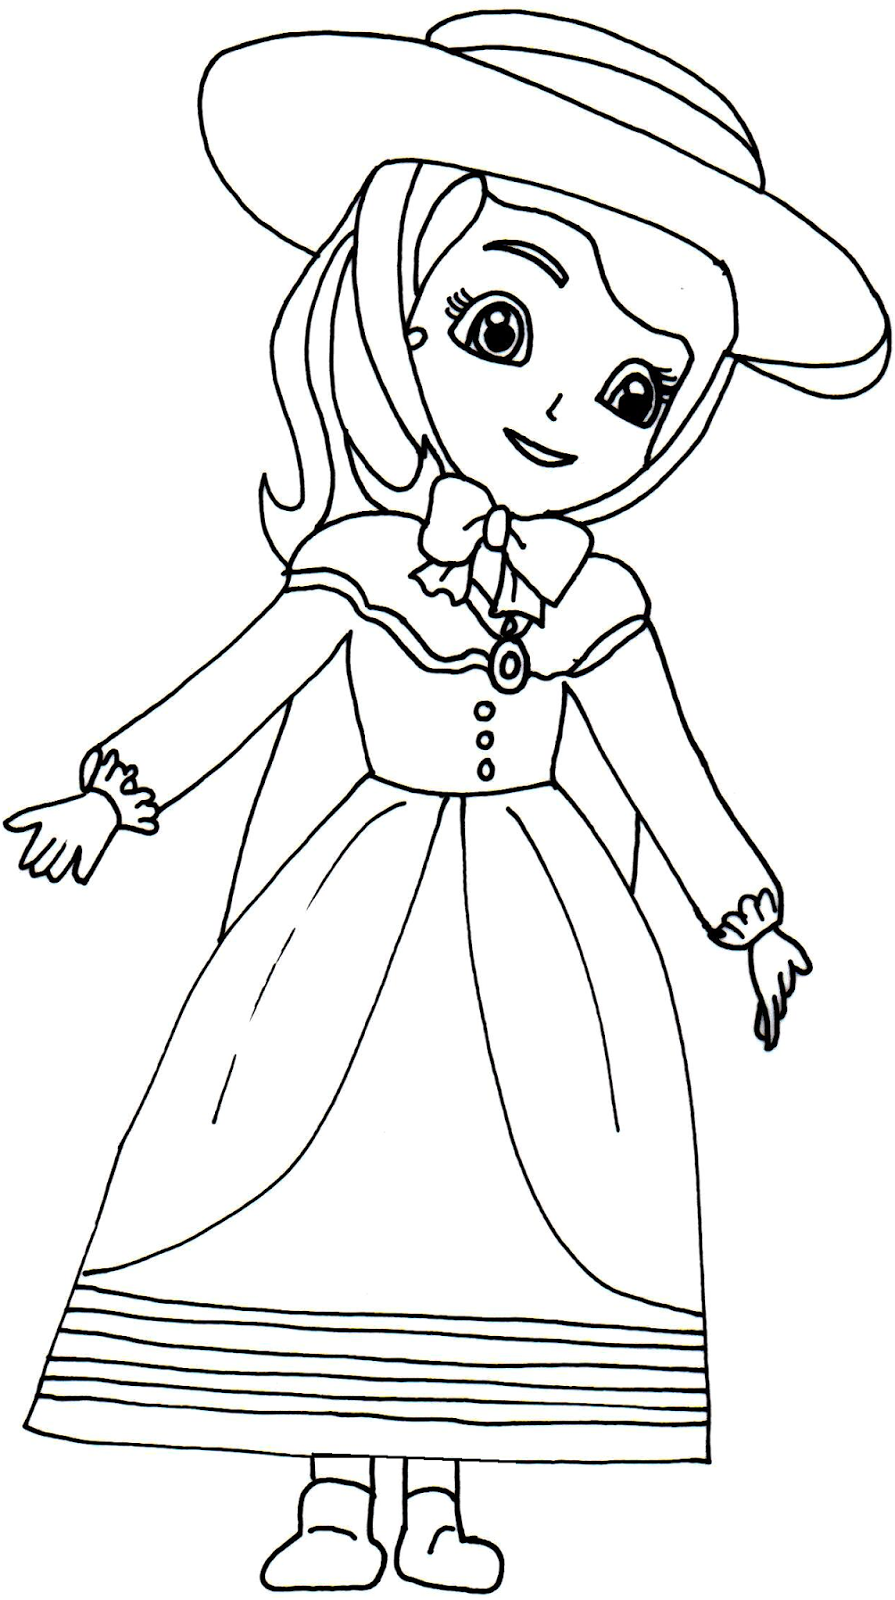 Sofia The First Coloring Pages To Print Disney Coloring Pages Printables Birthday Coloring Pages Princess Coloring Pages